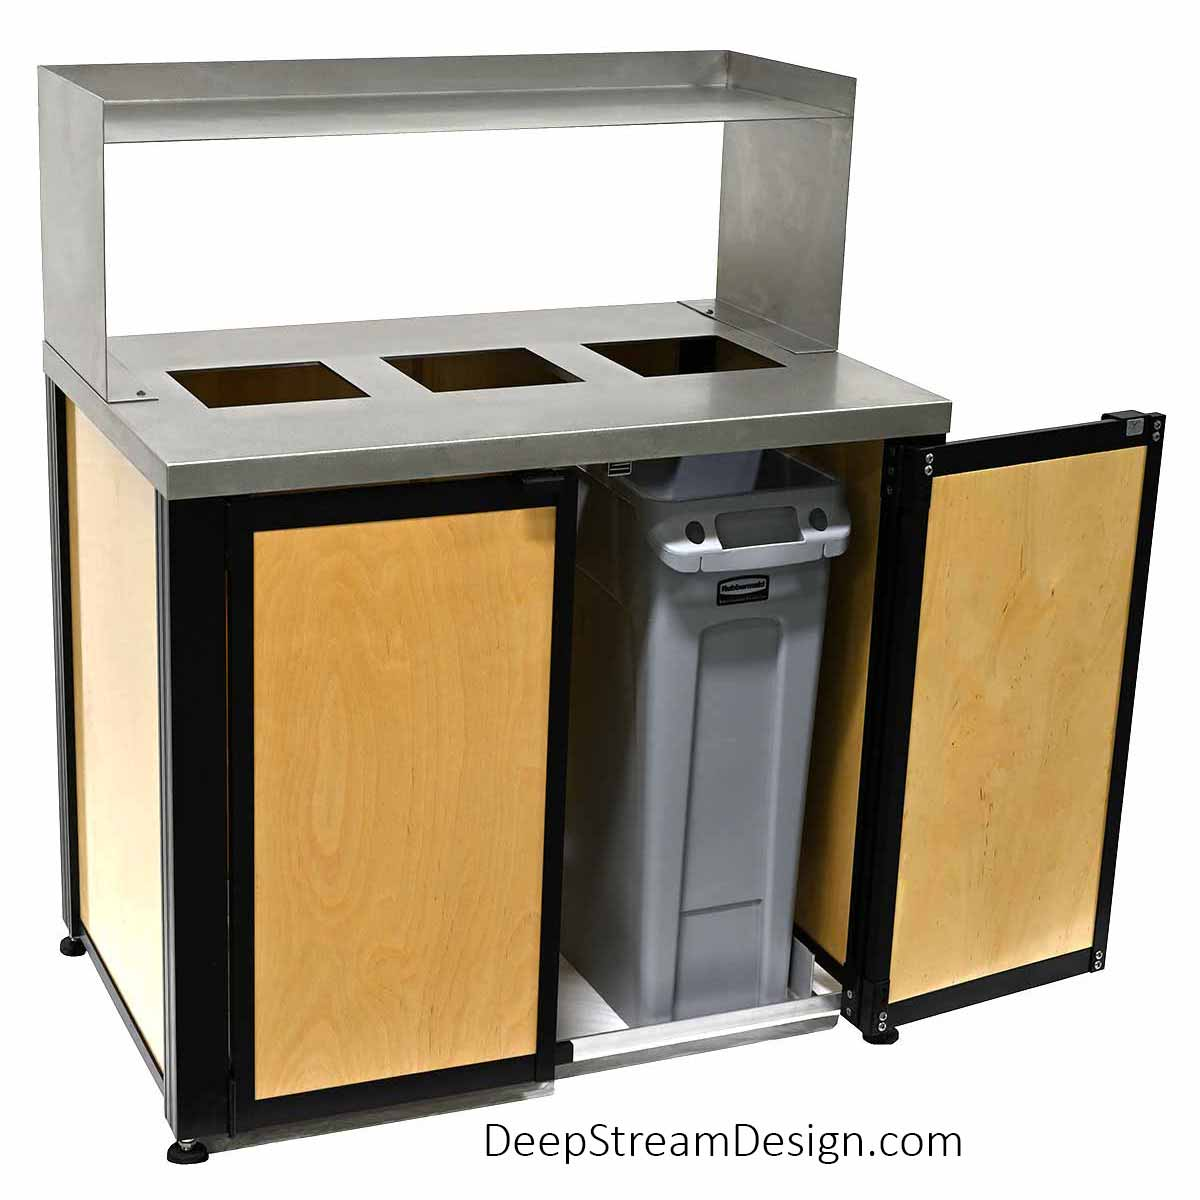 Studio photo showing a removable 14-gauge, 316 stainless steel food tray return shelf mounted atop the 16-gauge 316 stainless steel lid of a unique Oahu triple-stream Modern Commercial Combined Recycling and Trash Receptacle constructed with light maple panels and double front opening doors. The food tray return shelf is now a popular option for many self-serve restaurants.